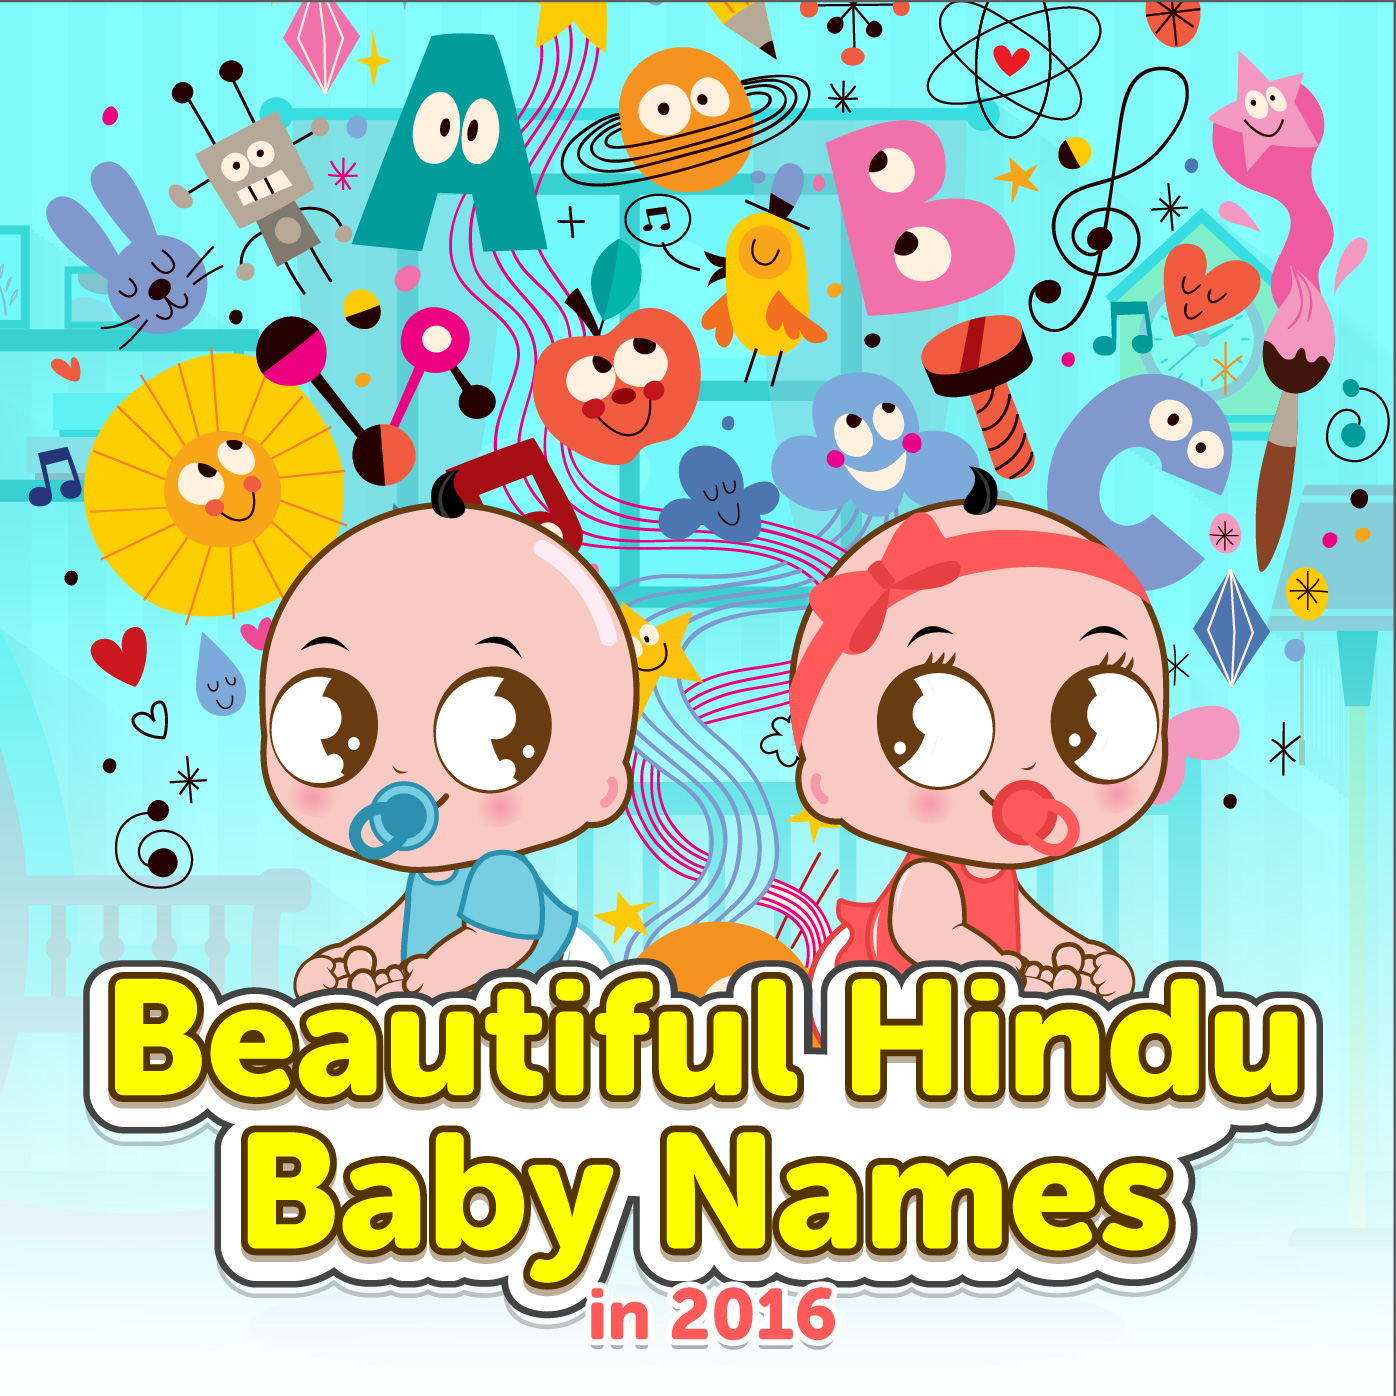 The most beautiful Hindu baby names for 2016